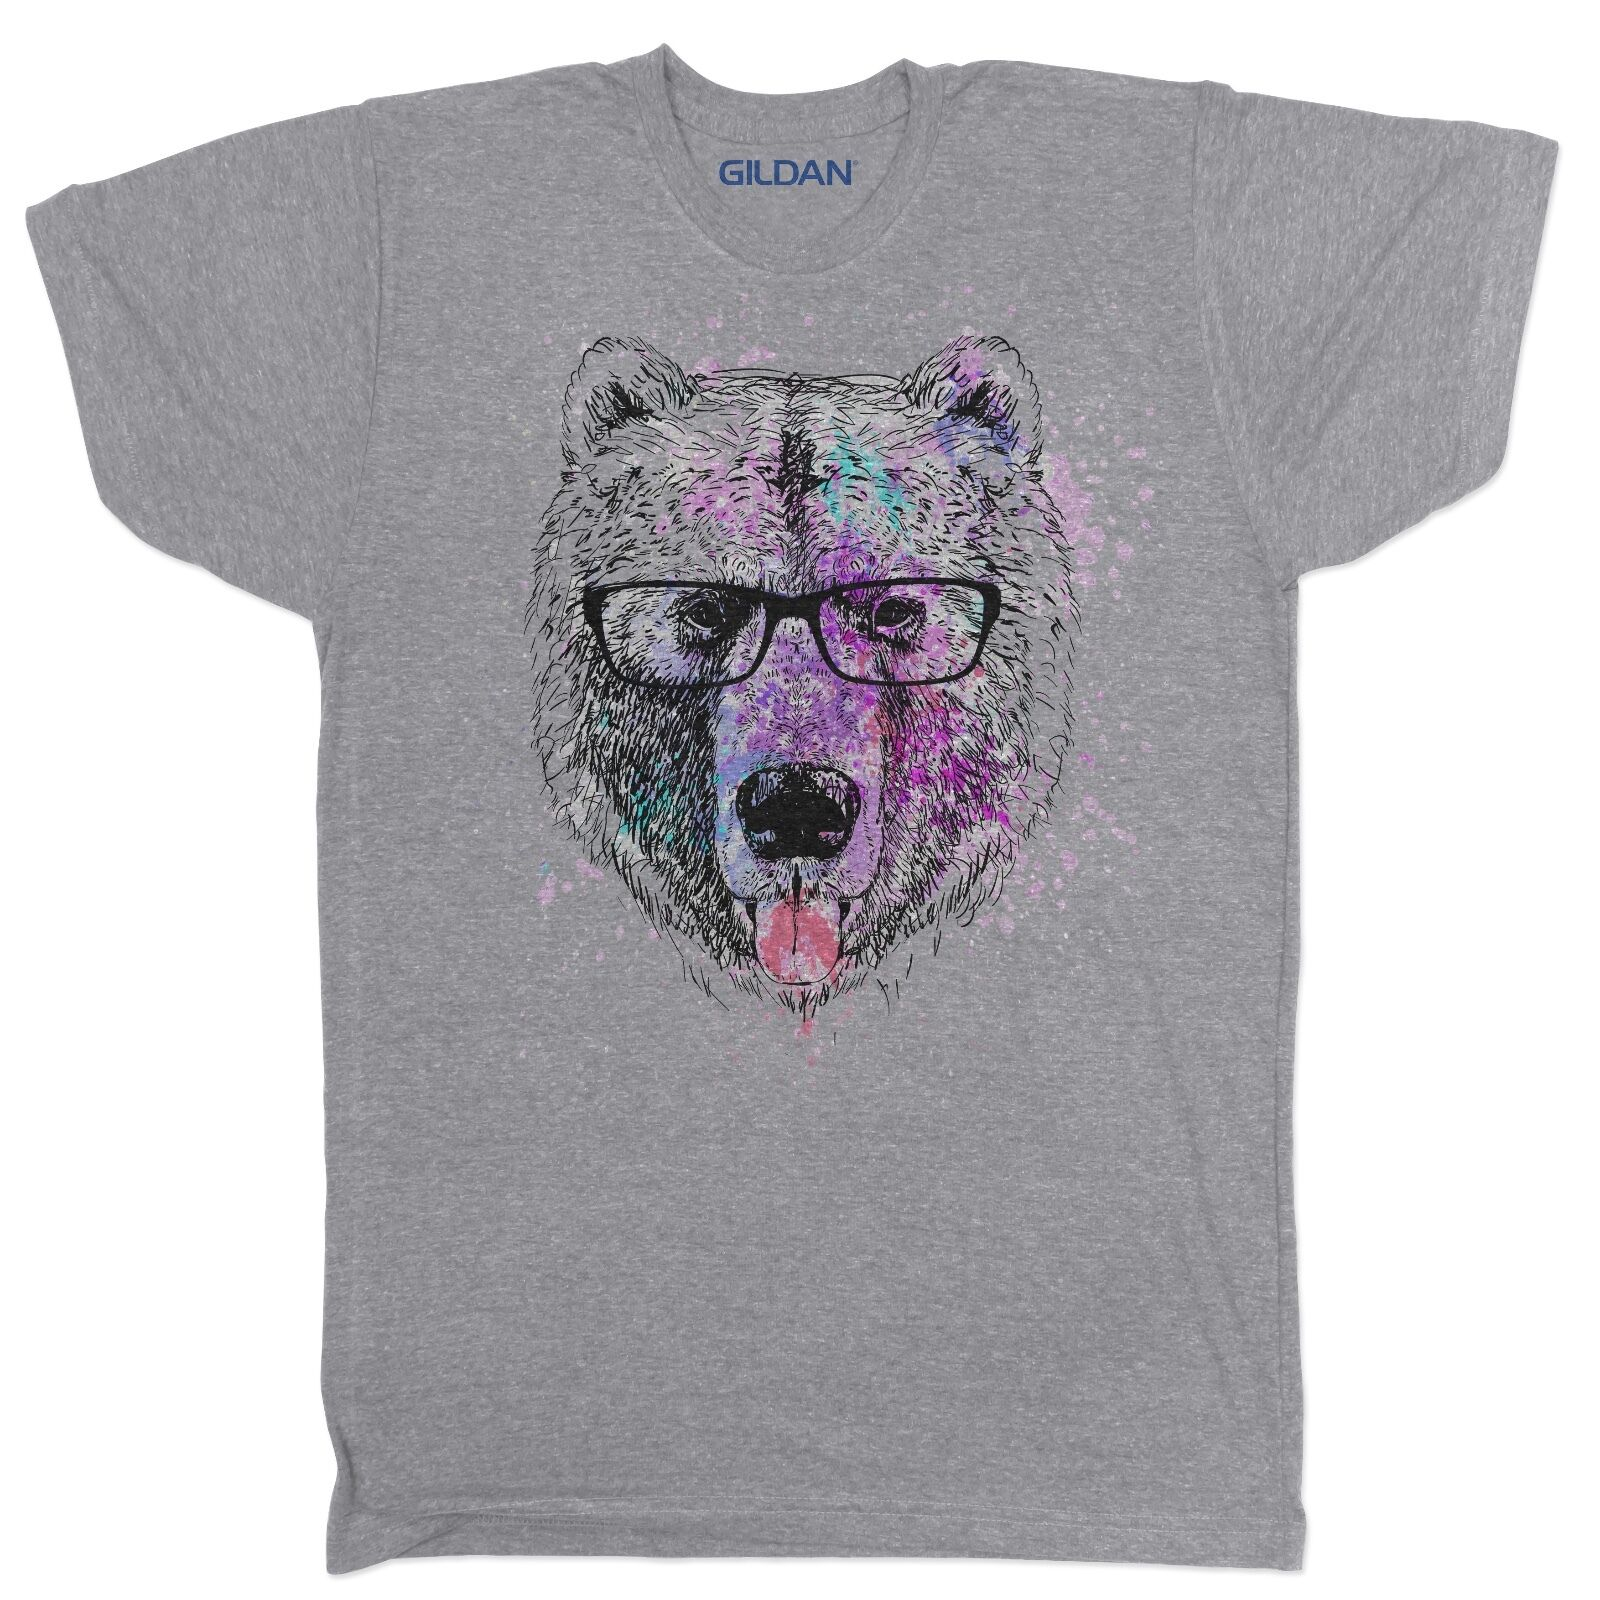 fa46befb24ad ABSTRACT BEAR ANIMAL COOL FUNNY TUMBLR URBAN VEGAN FASHION FESTIVAL T SHIRT  Gift Print T-shirt,Hip Hop Tee Shirt,NEW ARRIVAL tees